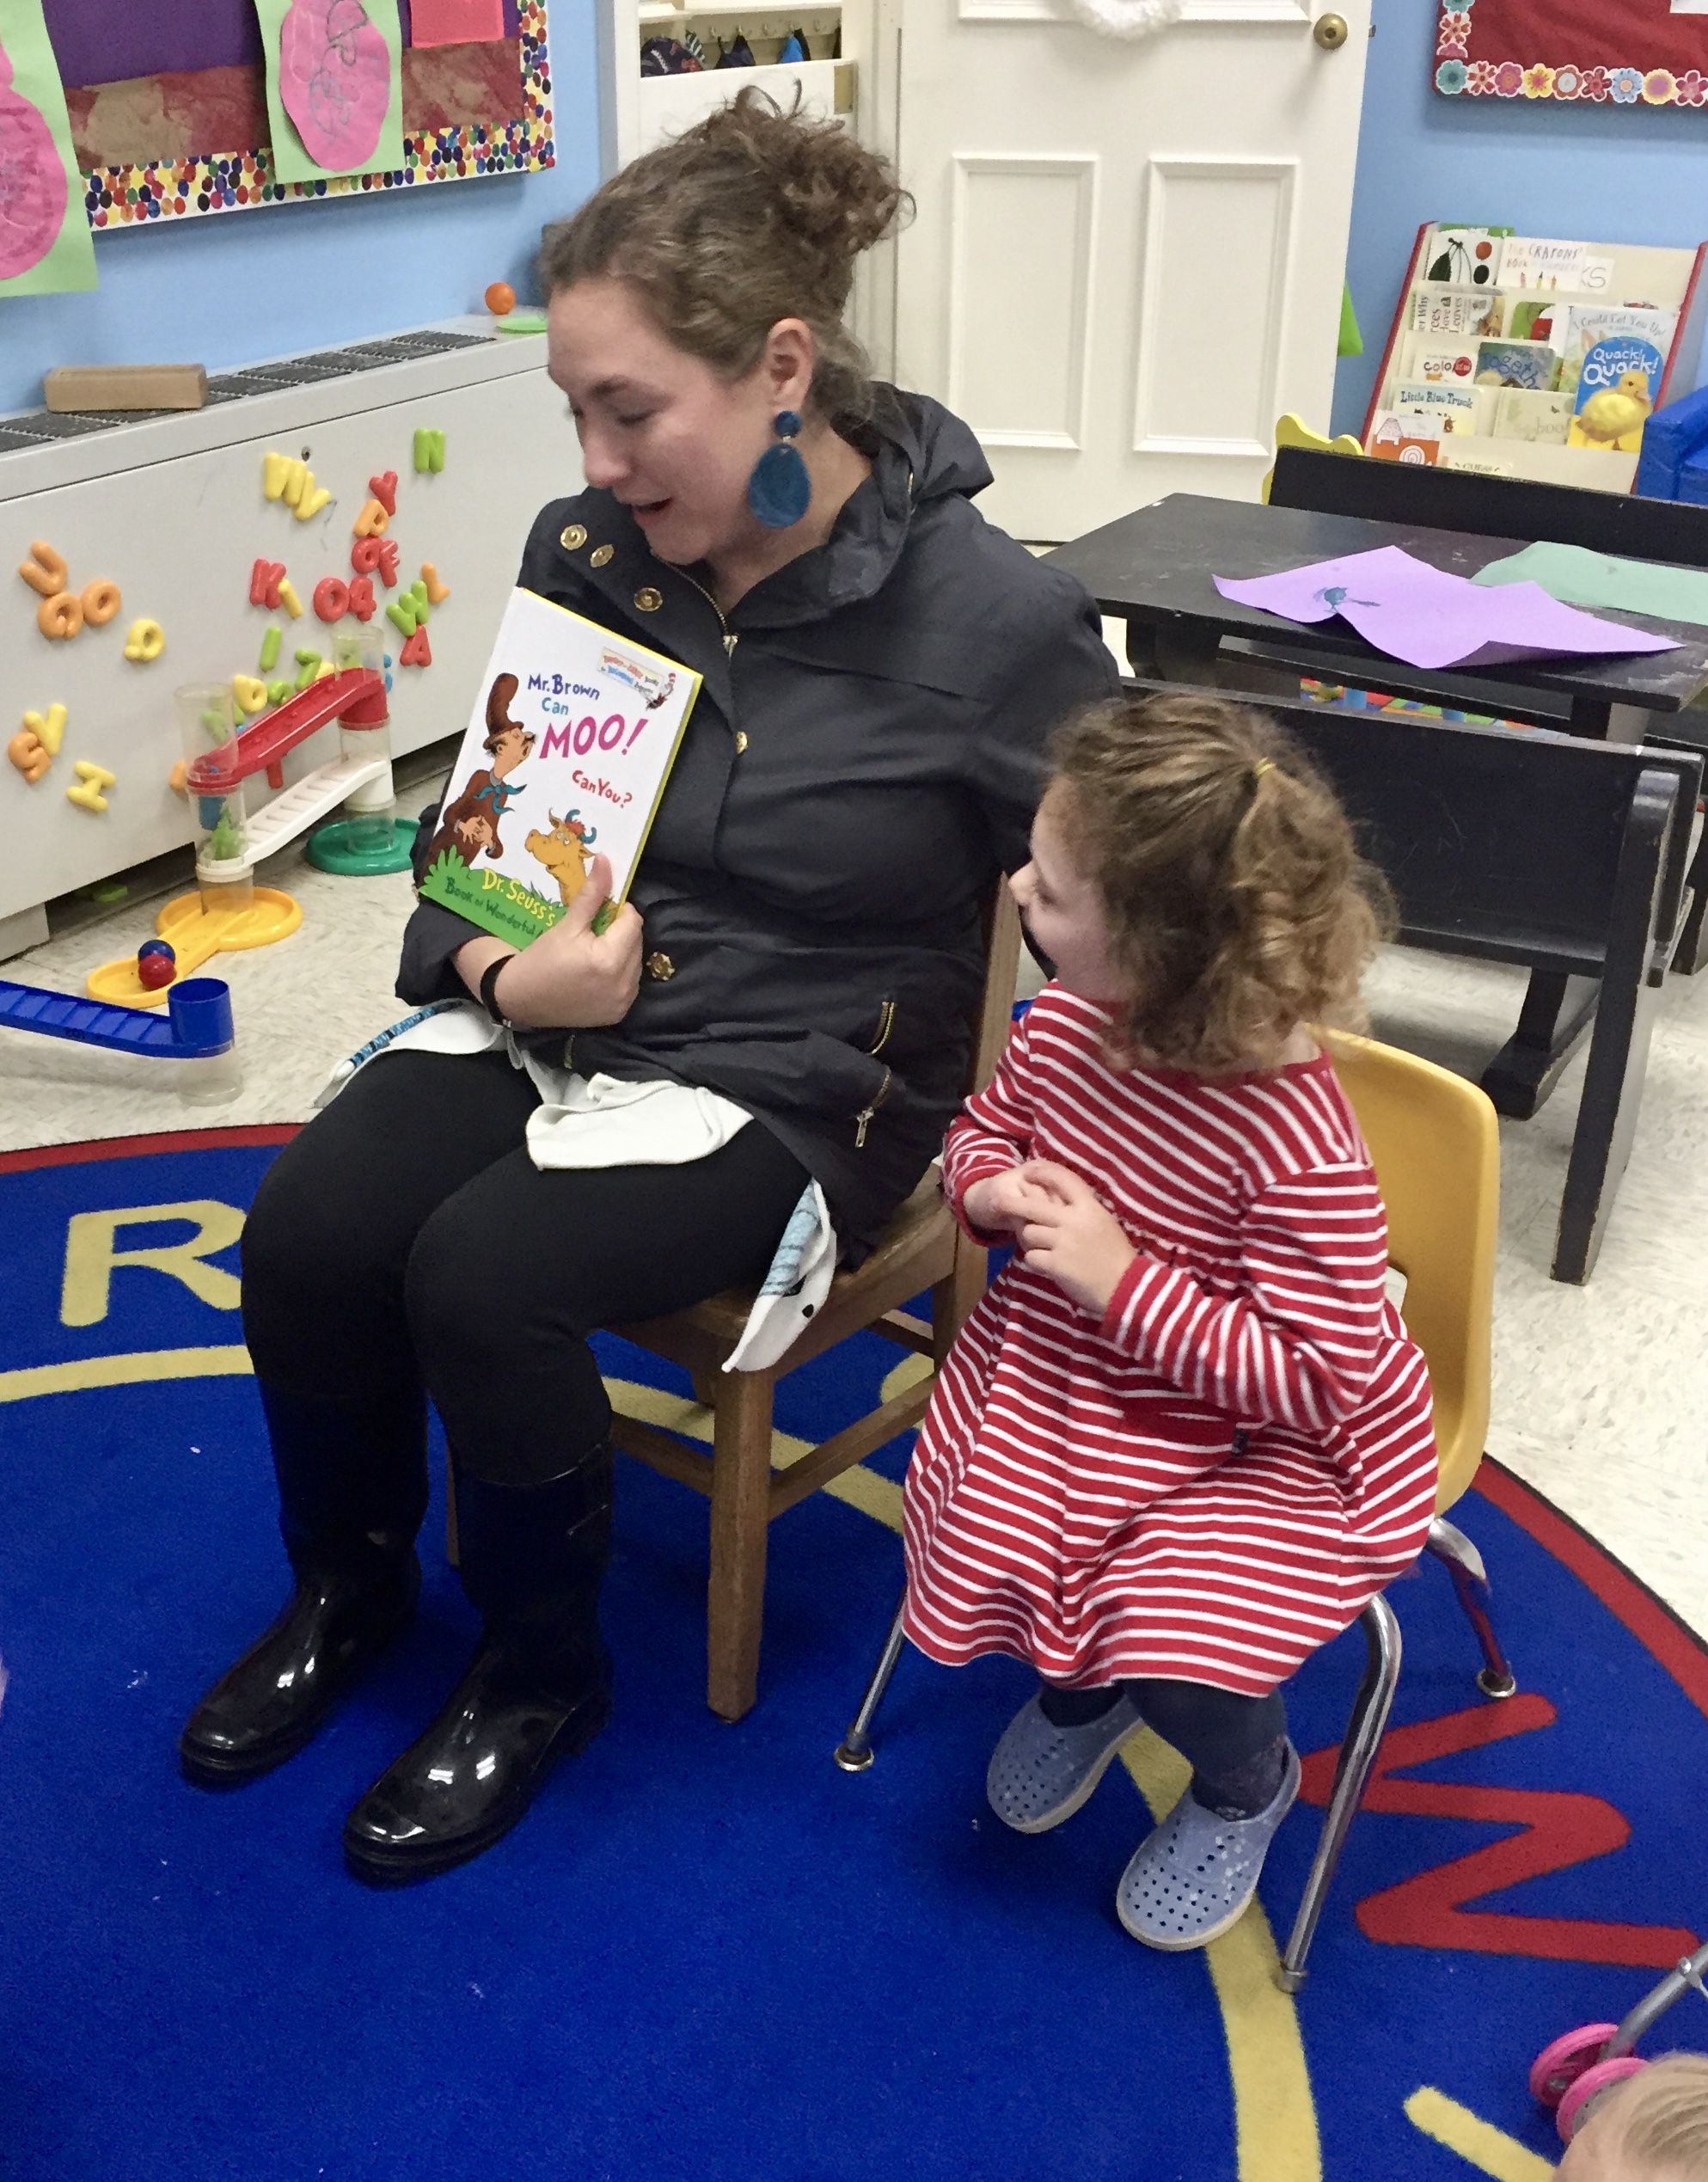 Thank you to Paige's mom for being Mystery Reader!